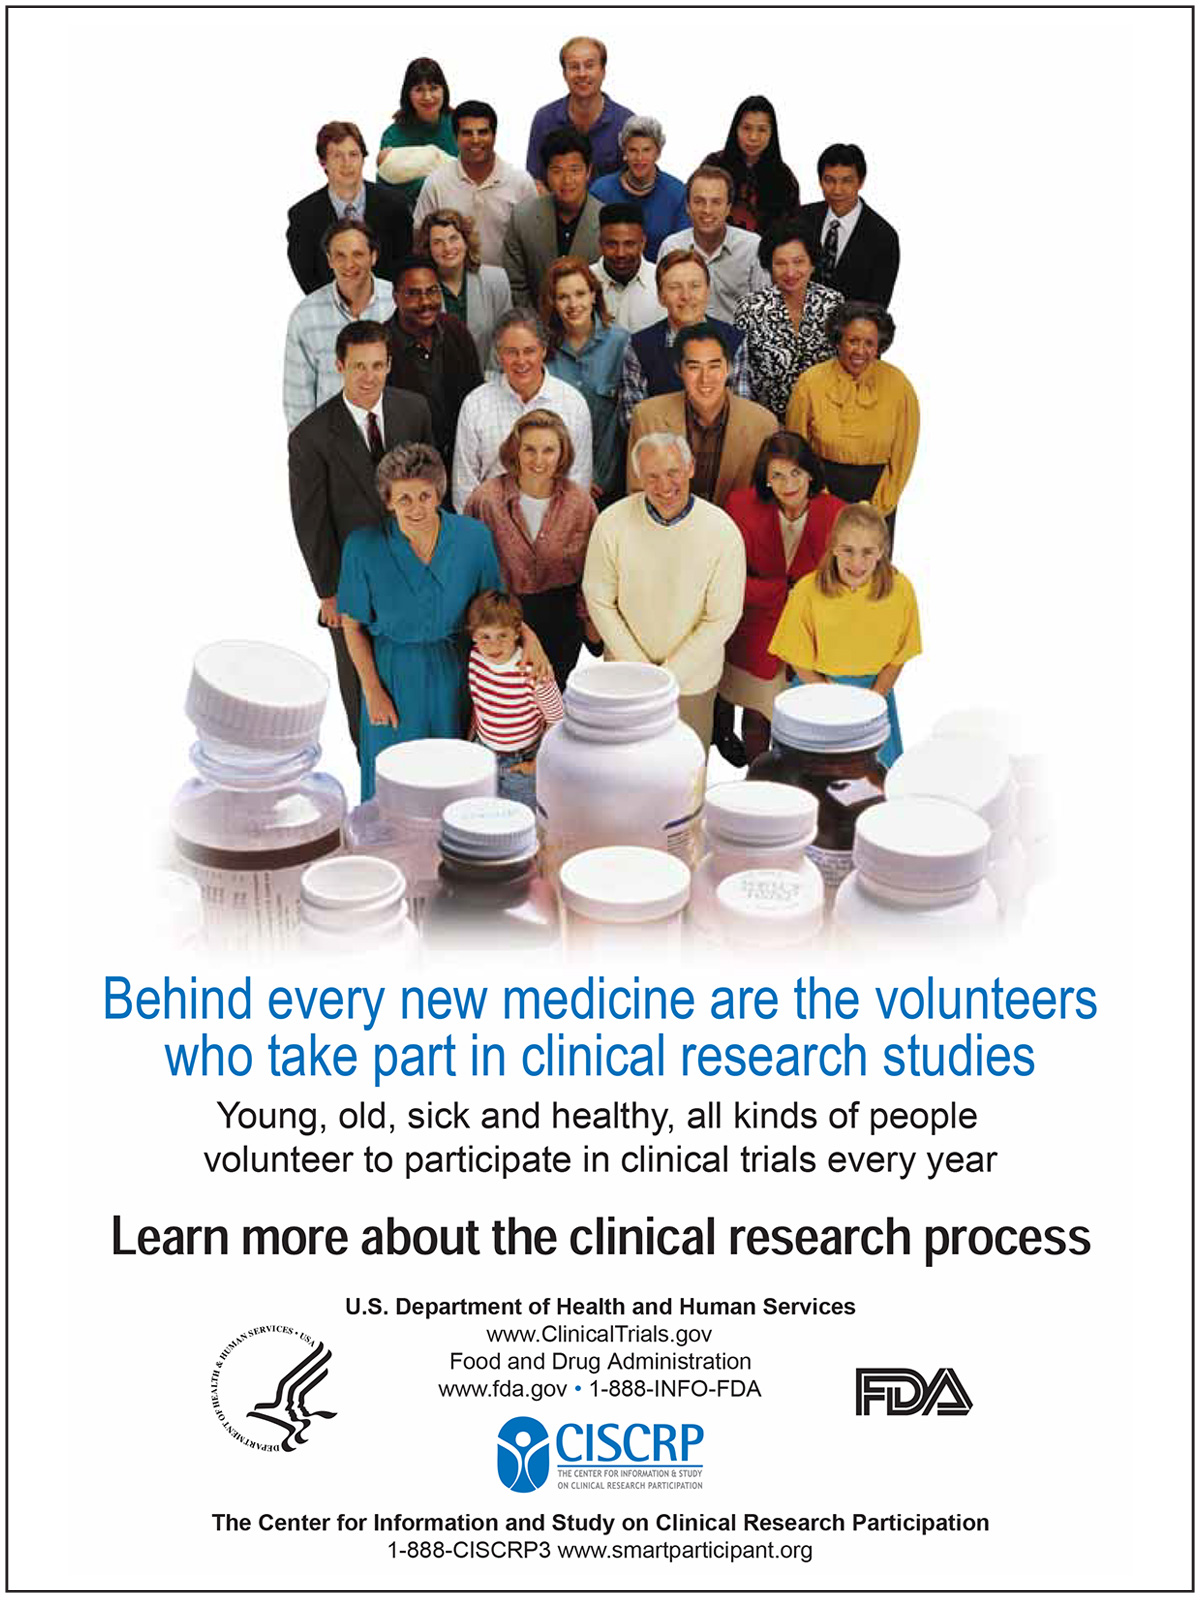 Volunteers Who Take Part in Clinical Research